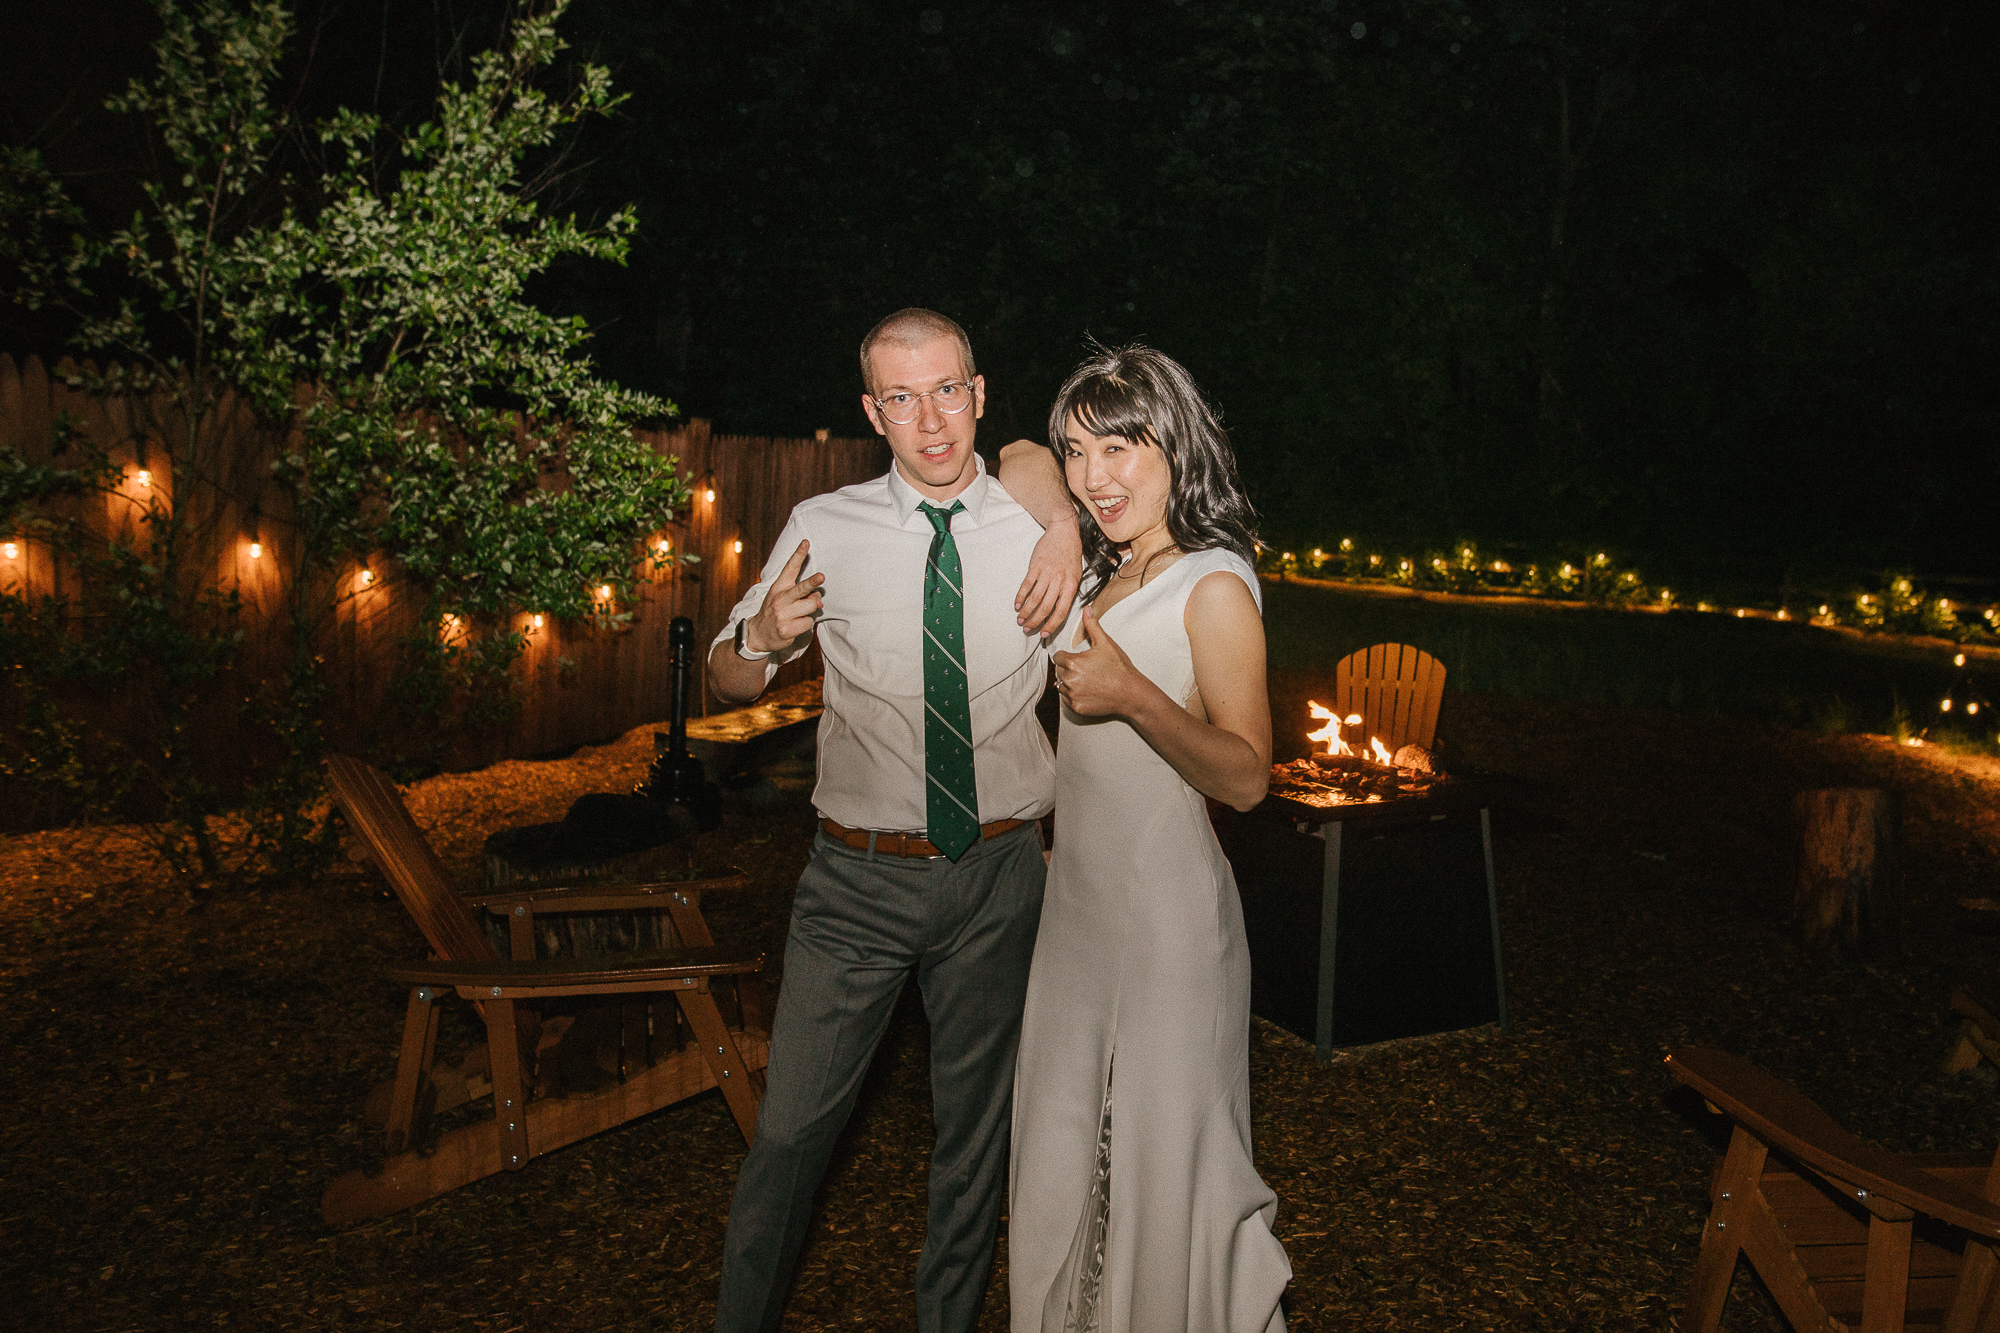 Eurry+Jarrett_Married_Blog_208.jpg